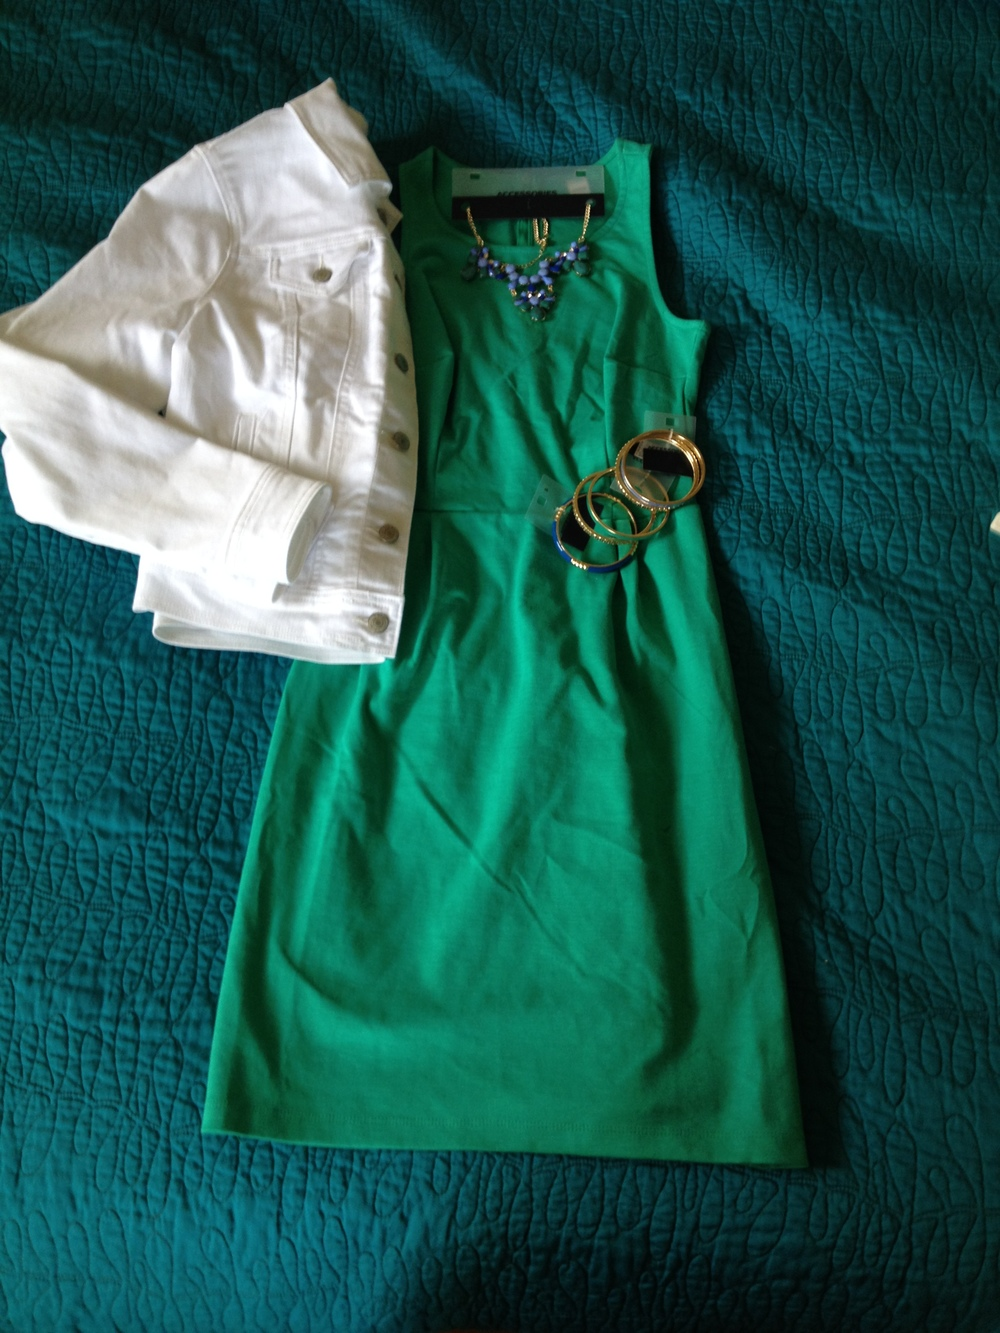 This is a fun dress that I found at OldNavy on sale for $20. You can't really tell in this photo, but the color is super bright and fun. This was actually one of my favorite Crayola Crayon colors back in the day and the shade is 'Jungle Green'. The jewelry is also from OldNavy and was around $8-$20 per piece. The denim jacket is OldNavy as well for $30. While I love the look of the bright white against the green in real life, I discovered at the shoot that it didn't photograph well. The white was just TOO white and affected the light balance in the photo. Lesson learned. :) We did not end up using this dress or jewelry in the shoot, but we did take a few photos with the jacket.